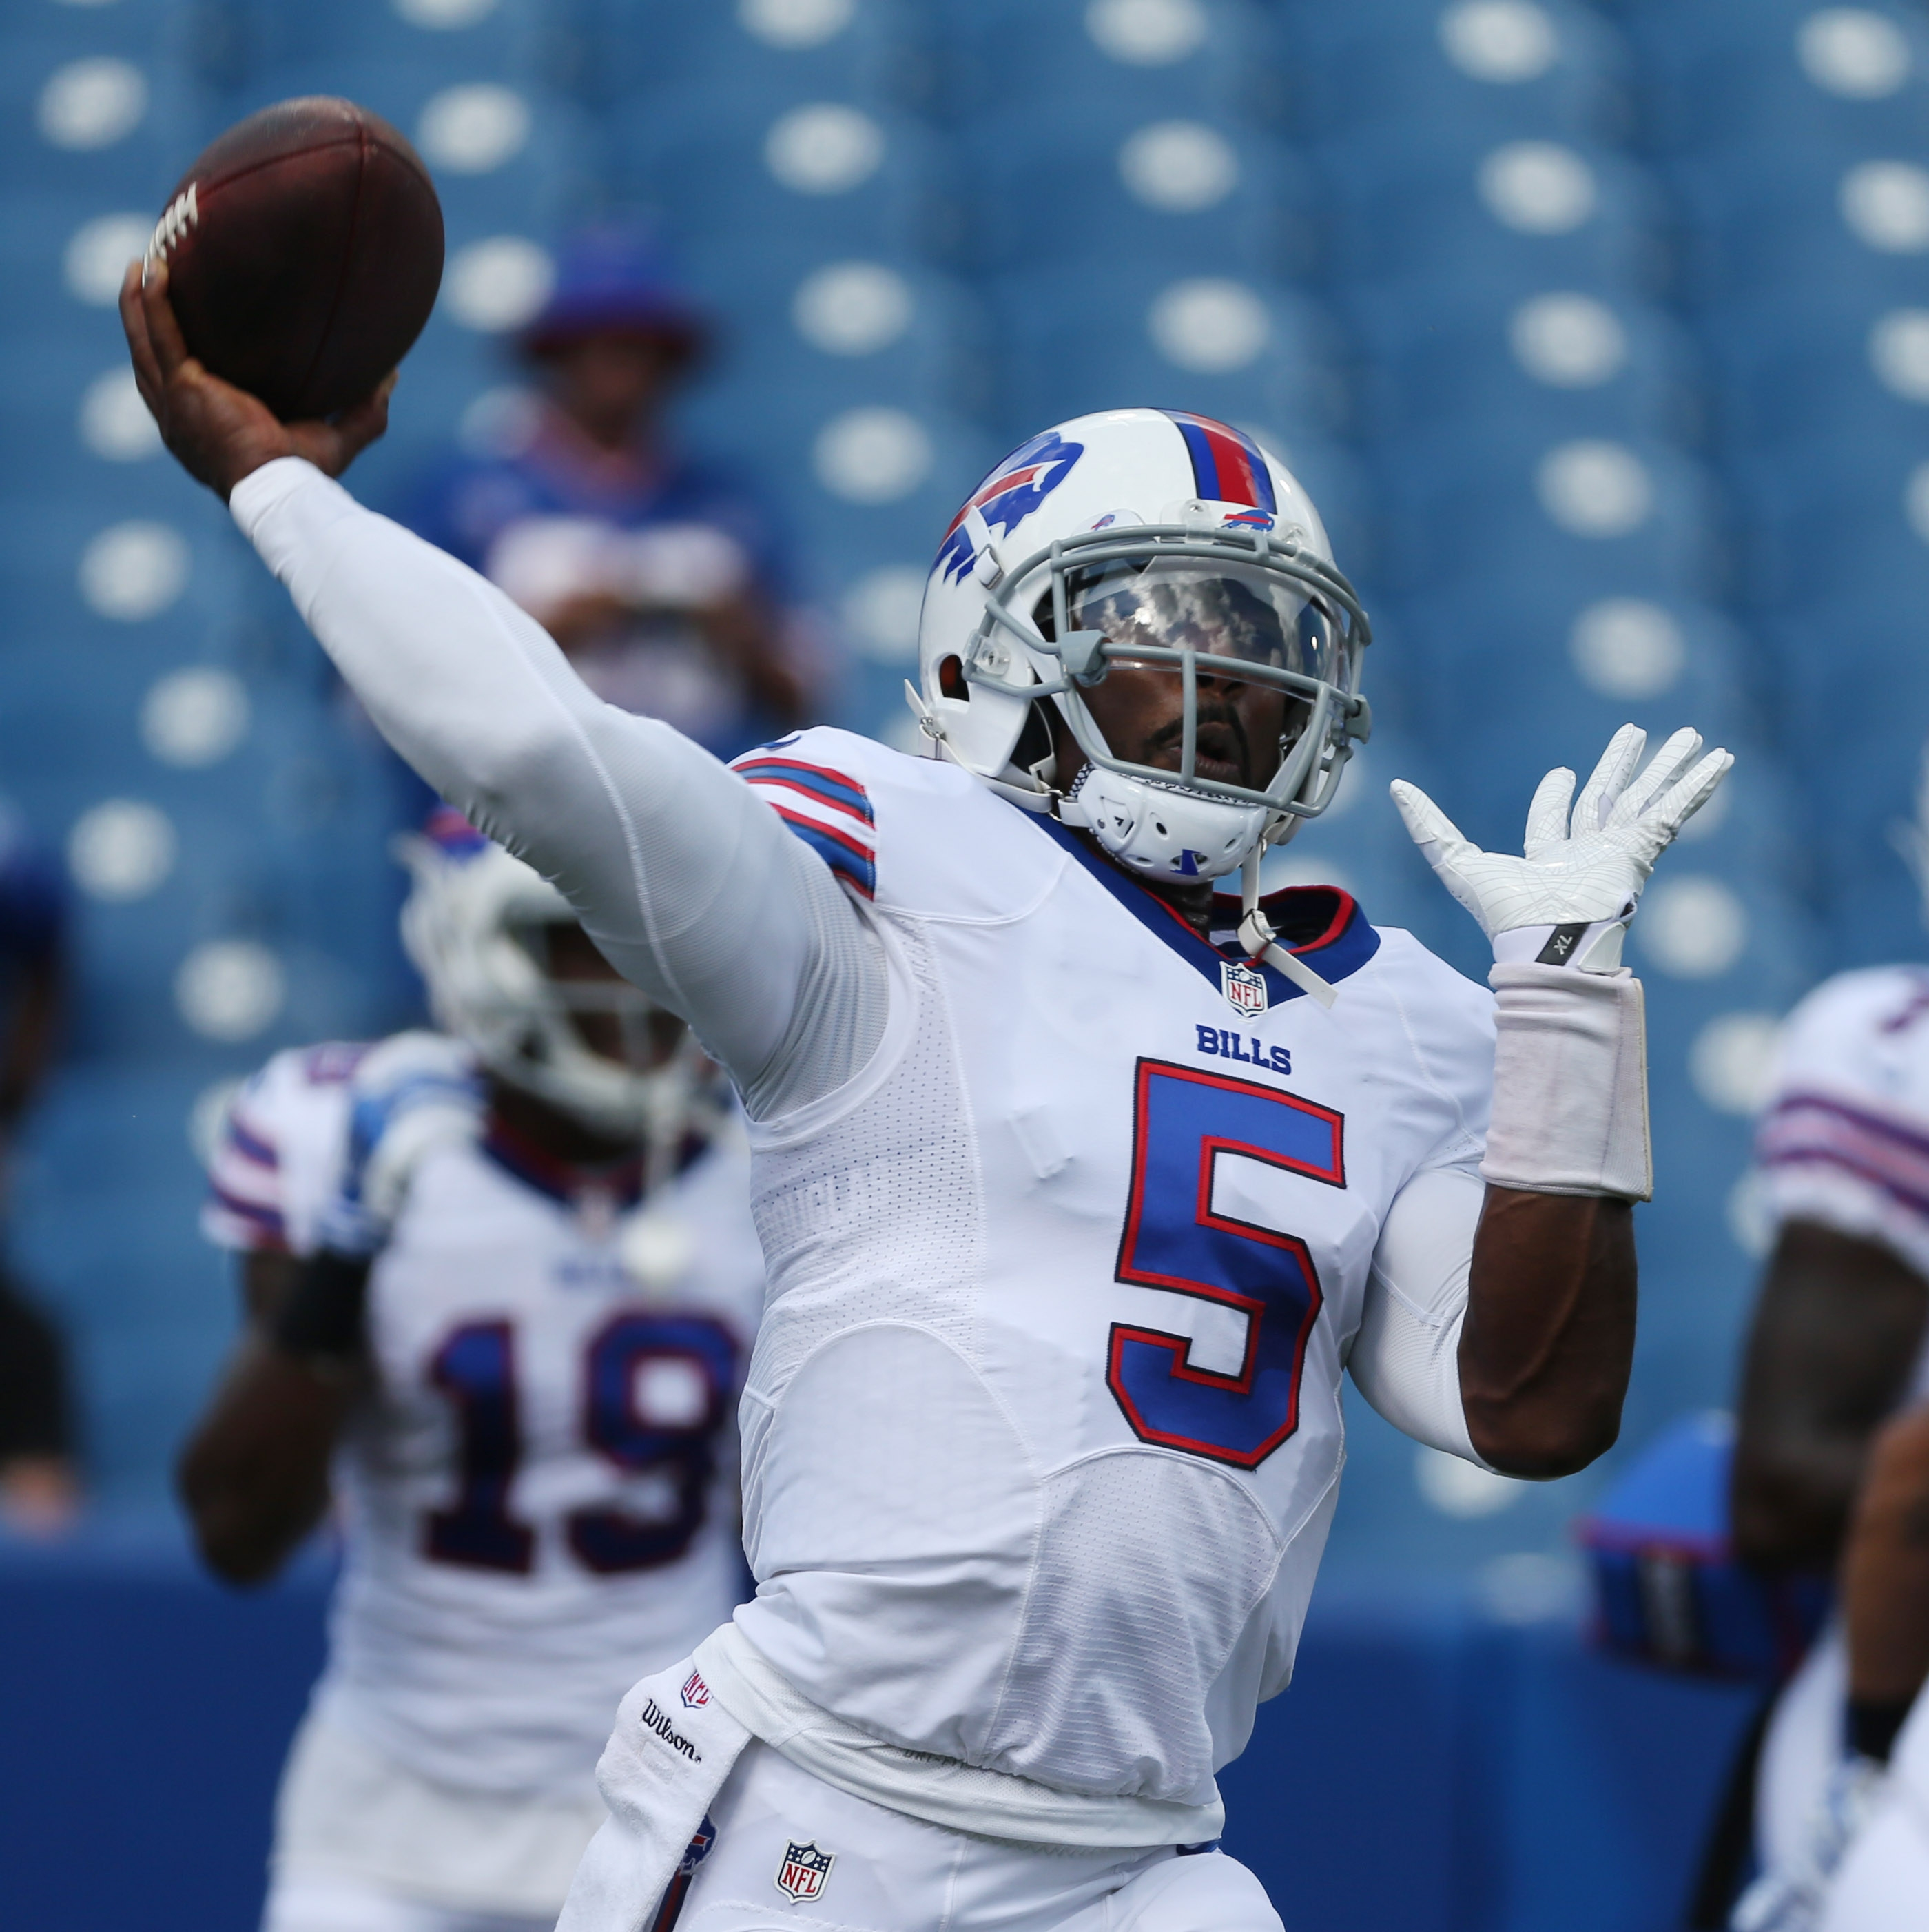 Reader questions about Tyrod Taylor make it clear his contract is the top issue facing the Bills.